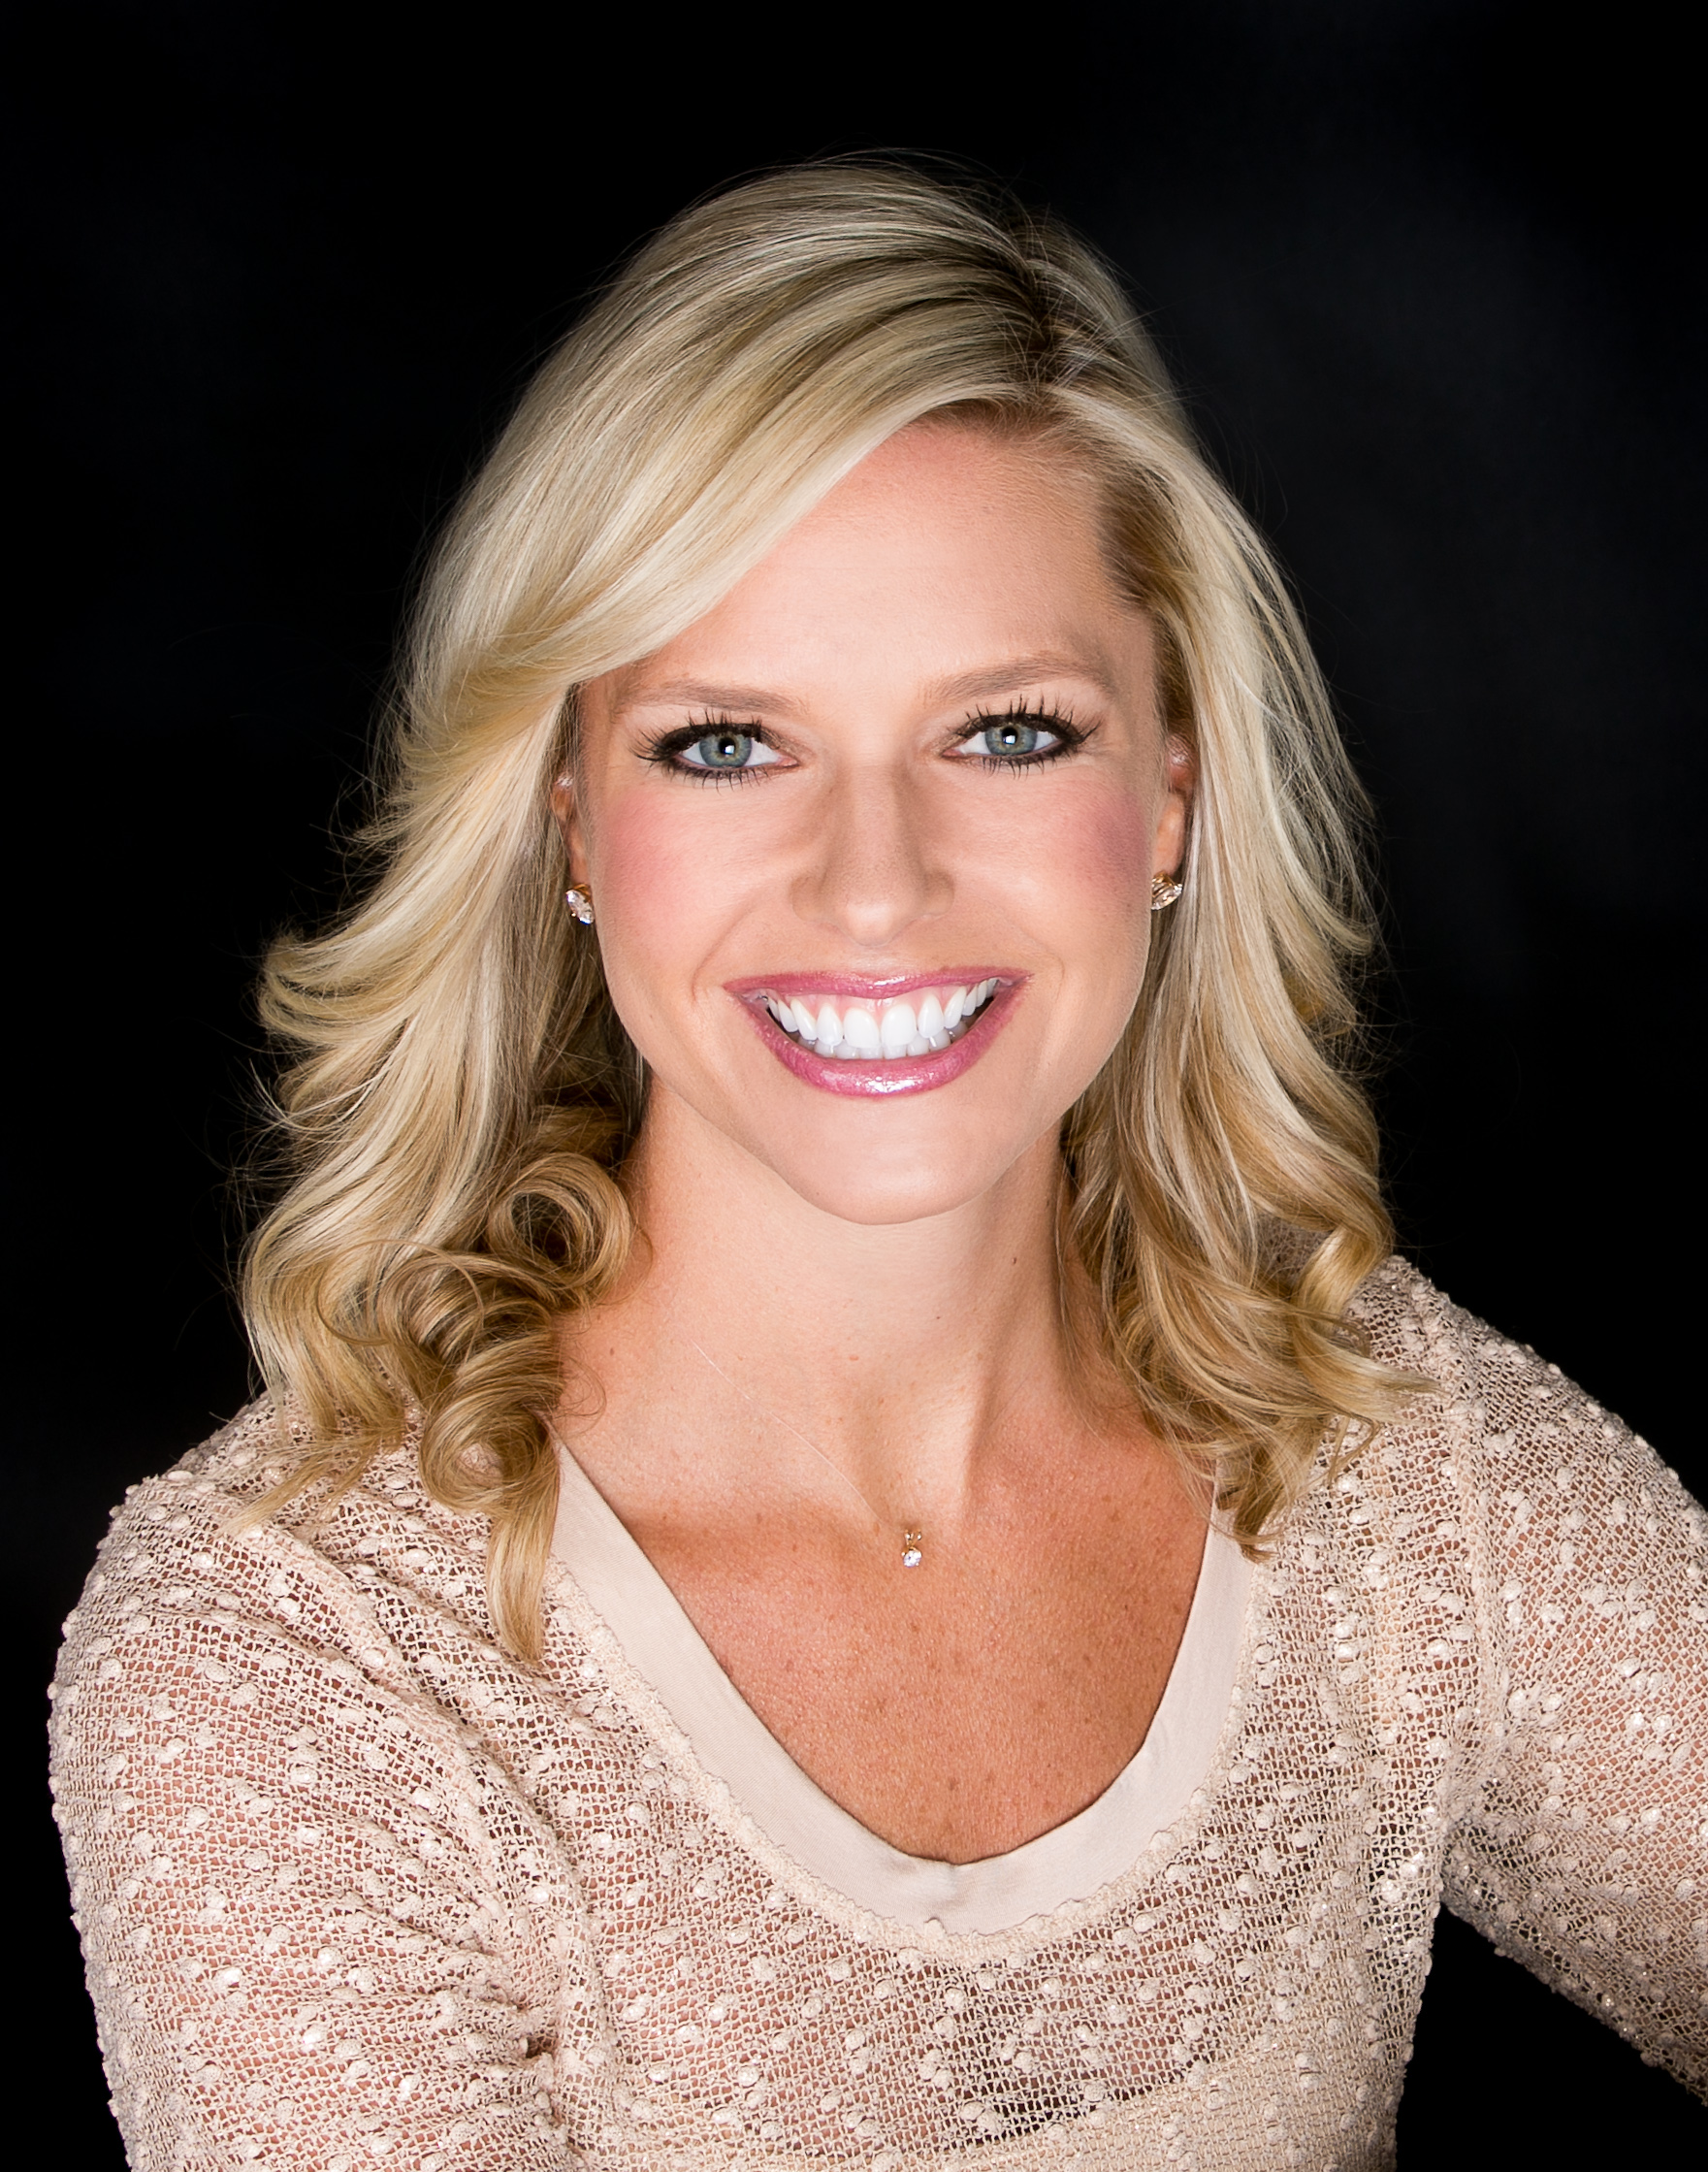 Kathryn Tappen Joins Nbc Sports Fang S Bites